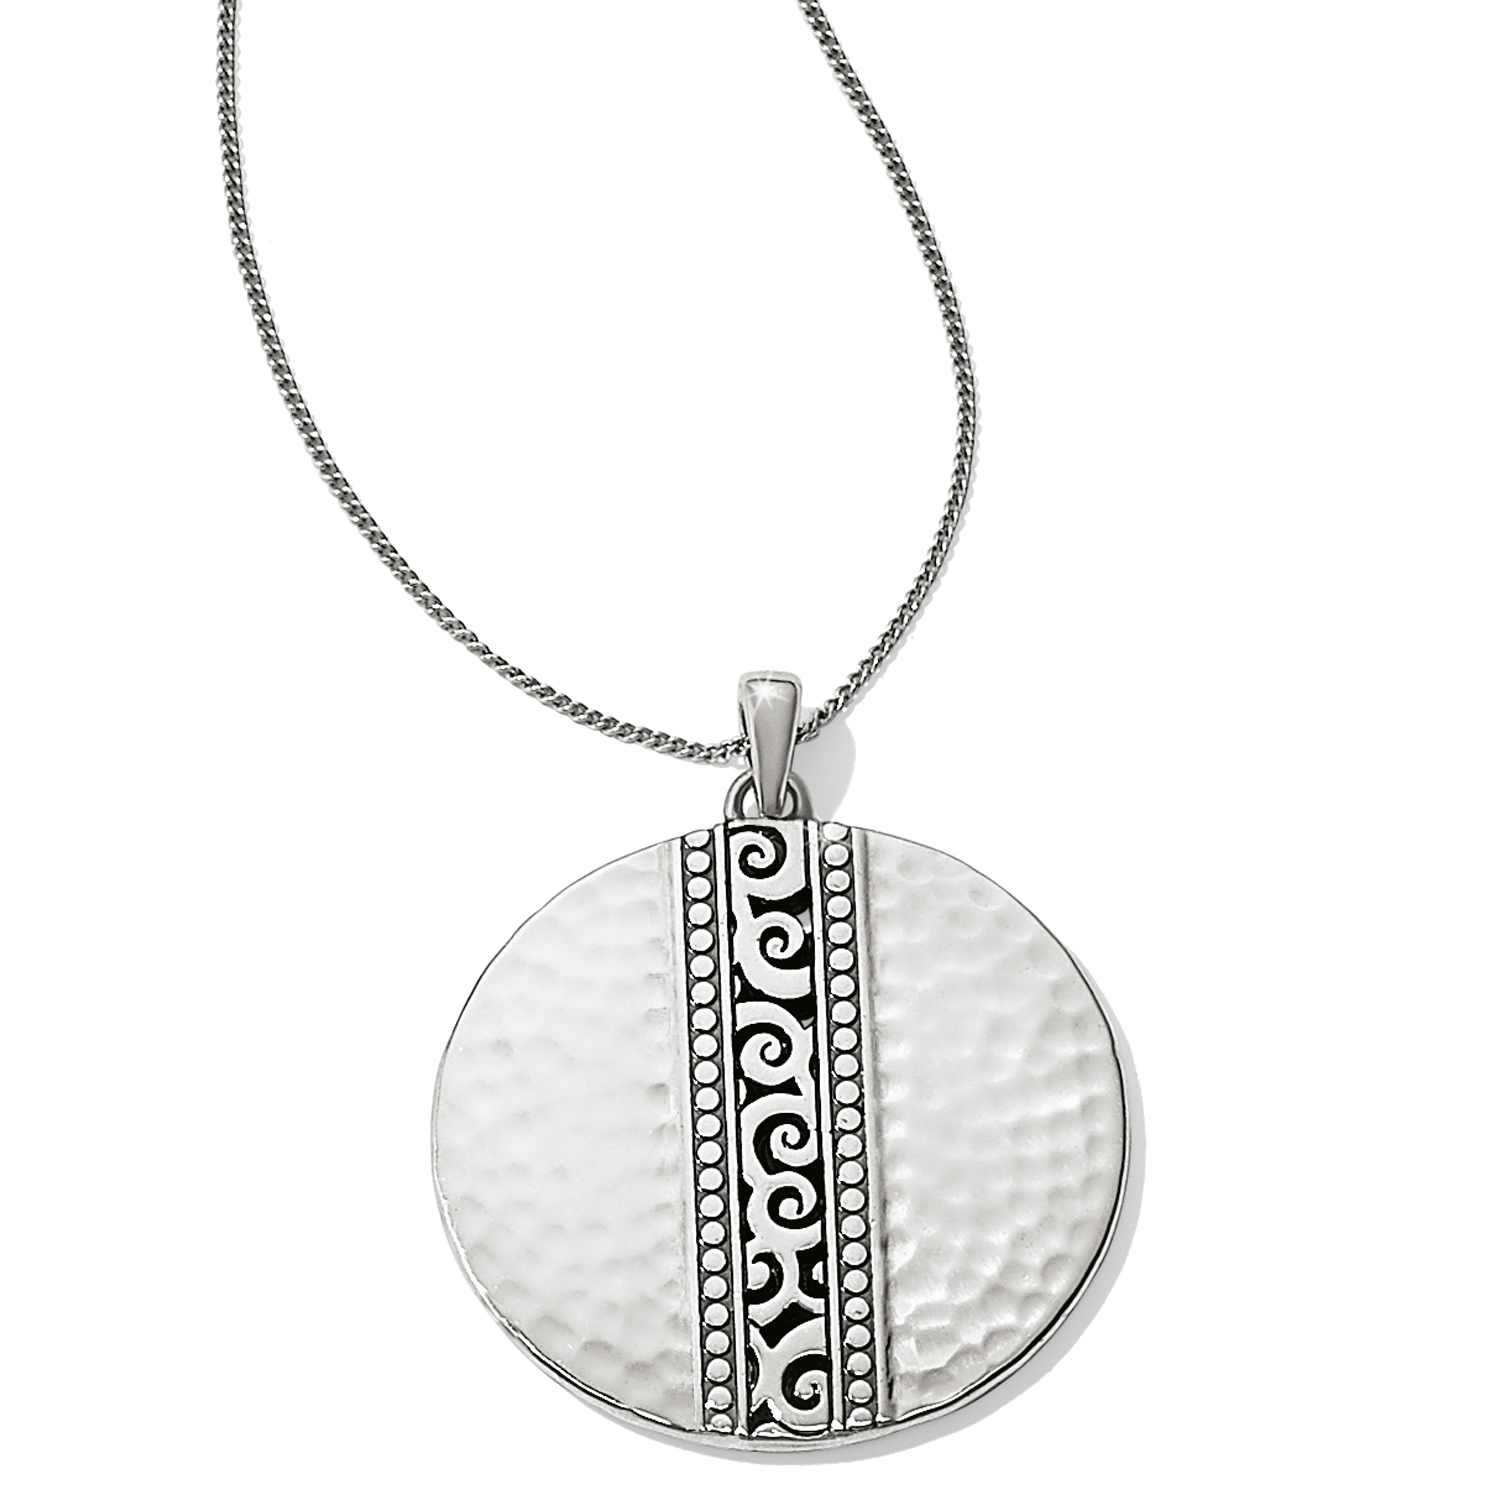 Mingle Disc Necklace from Brighton